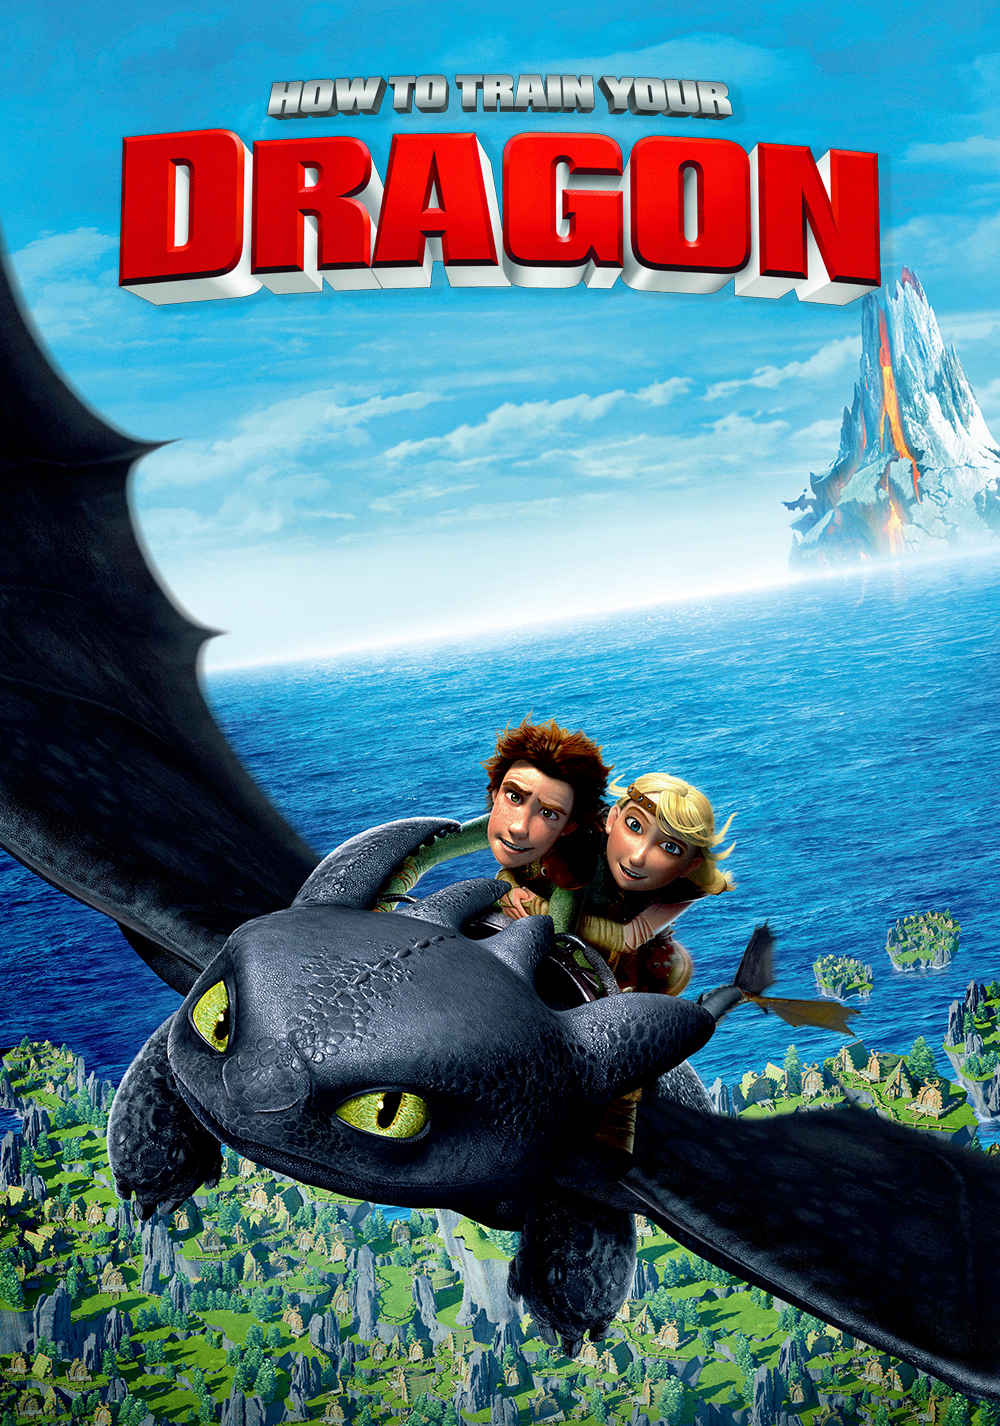 How to Train Your Dragon (filme) Wikip dia, a